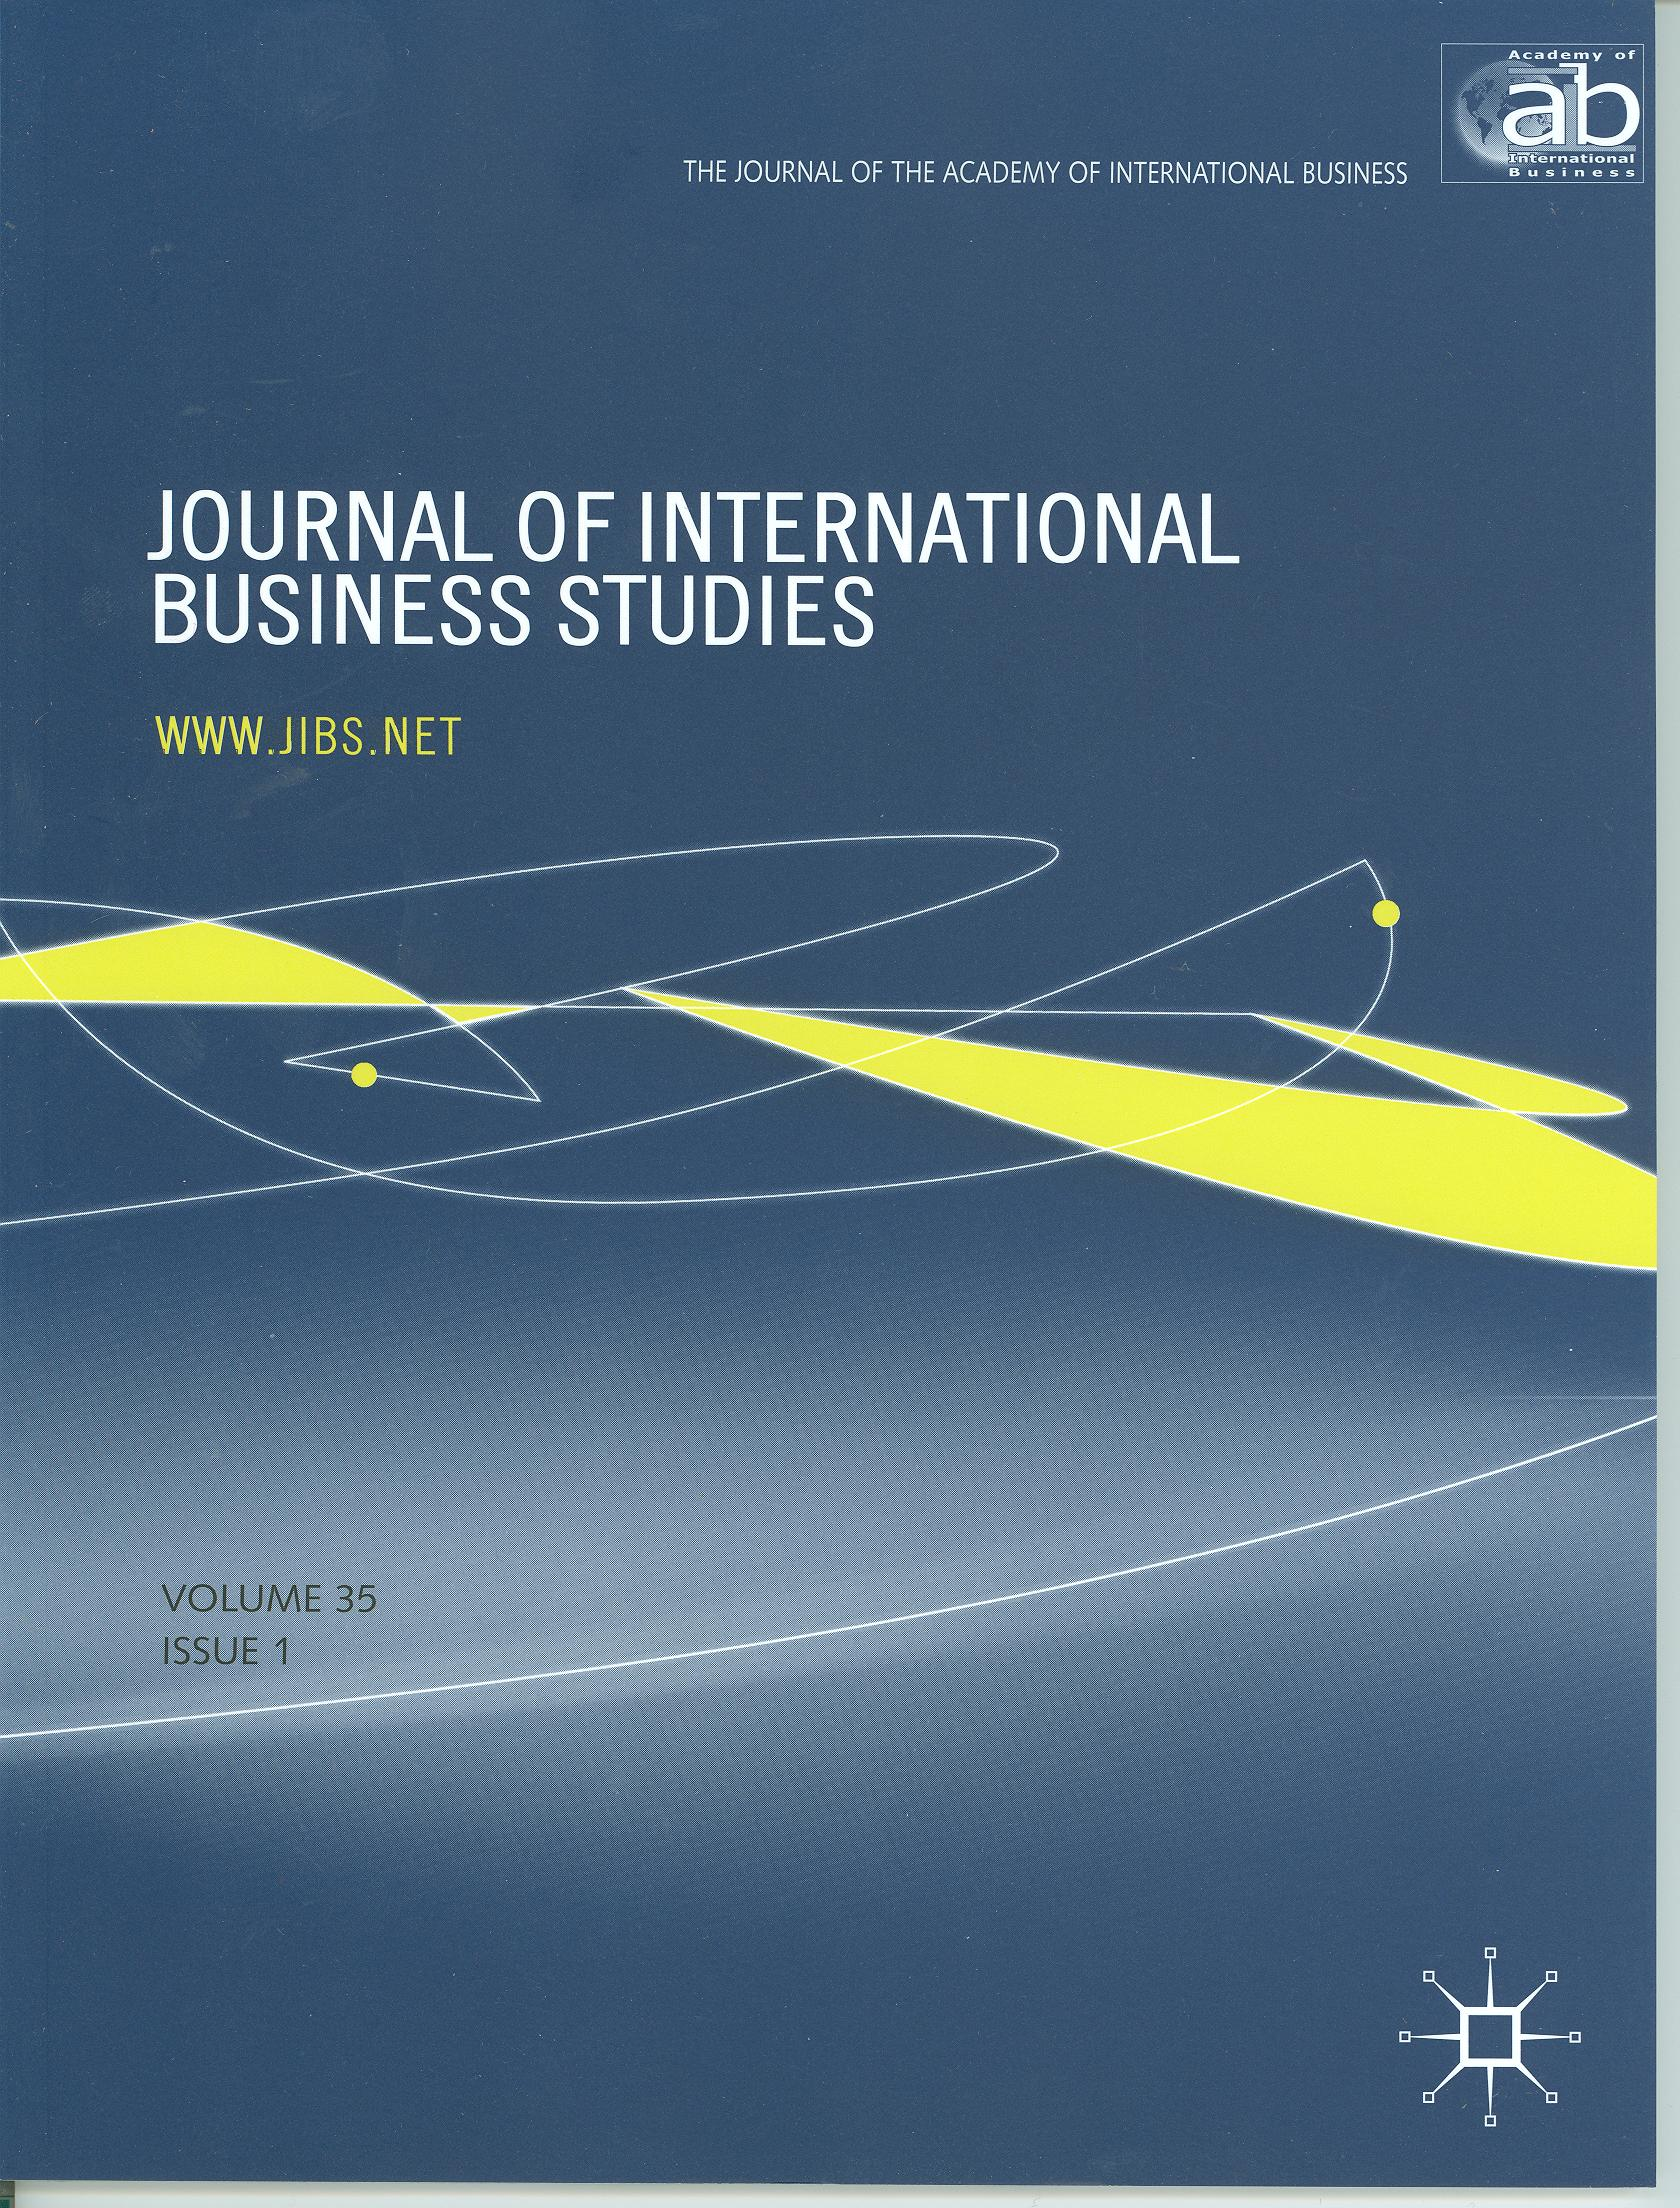 Cover design from a 2004 issue of JIBS